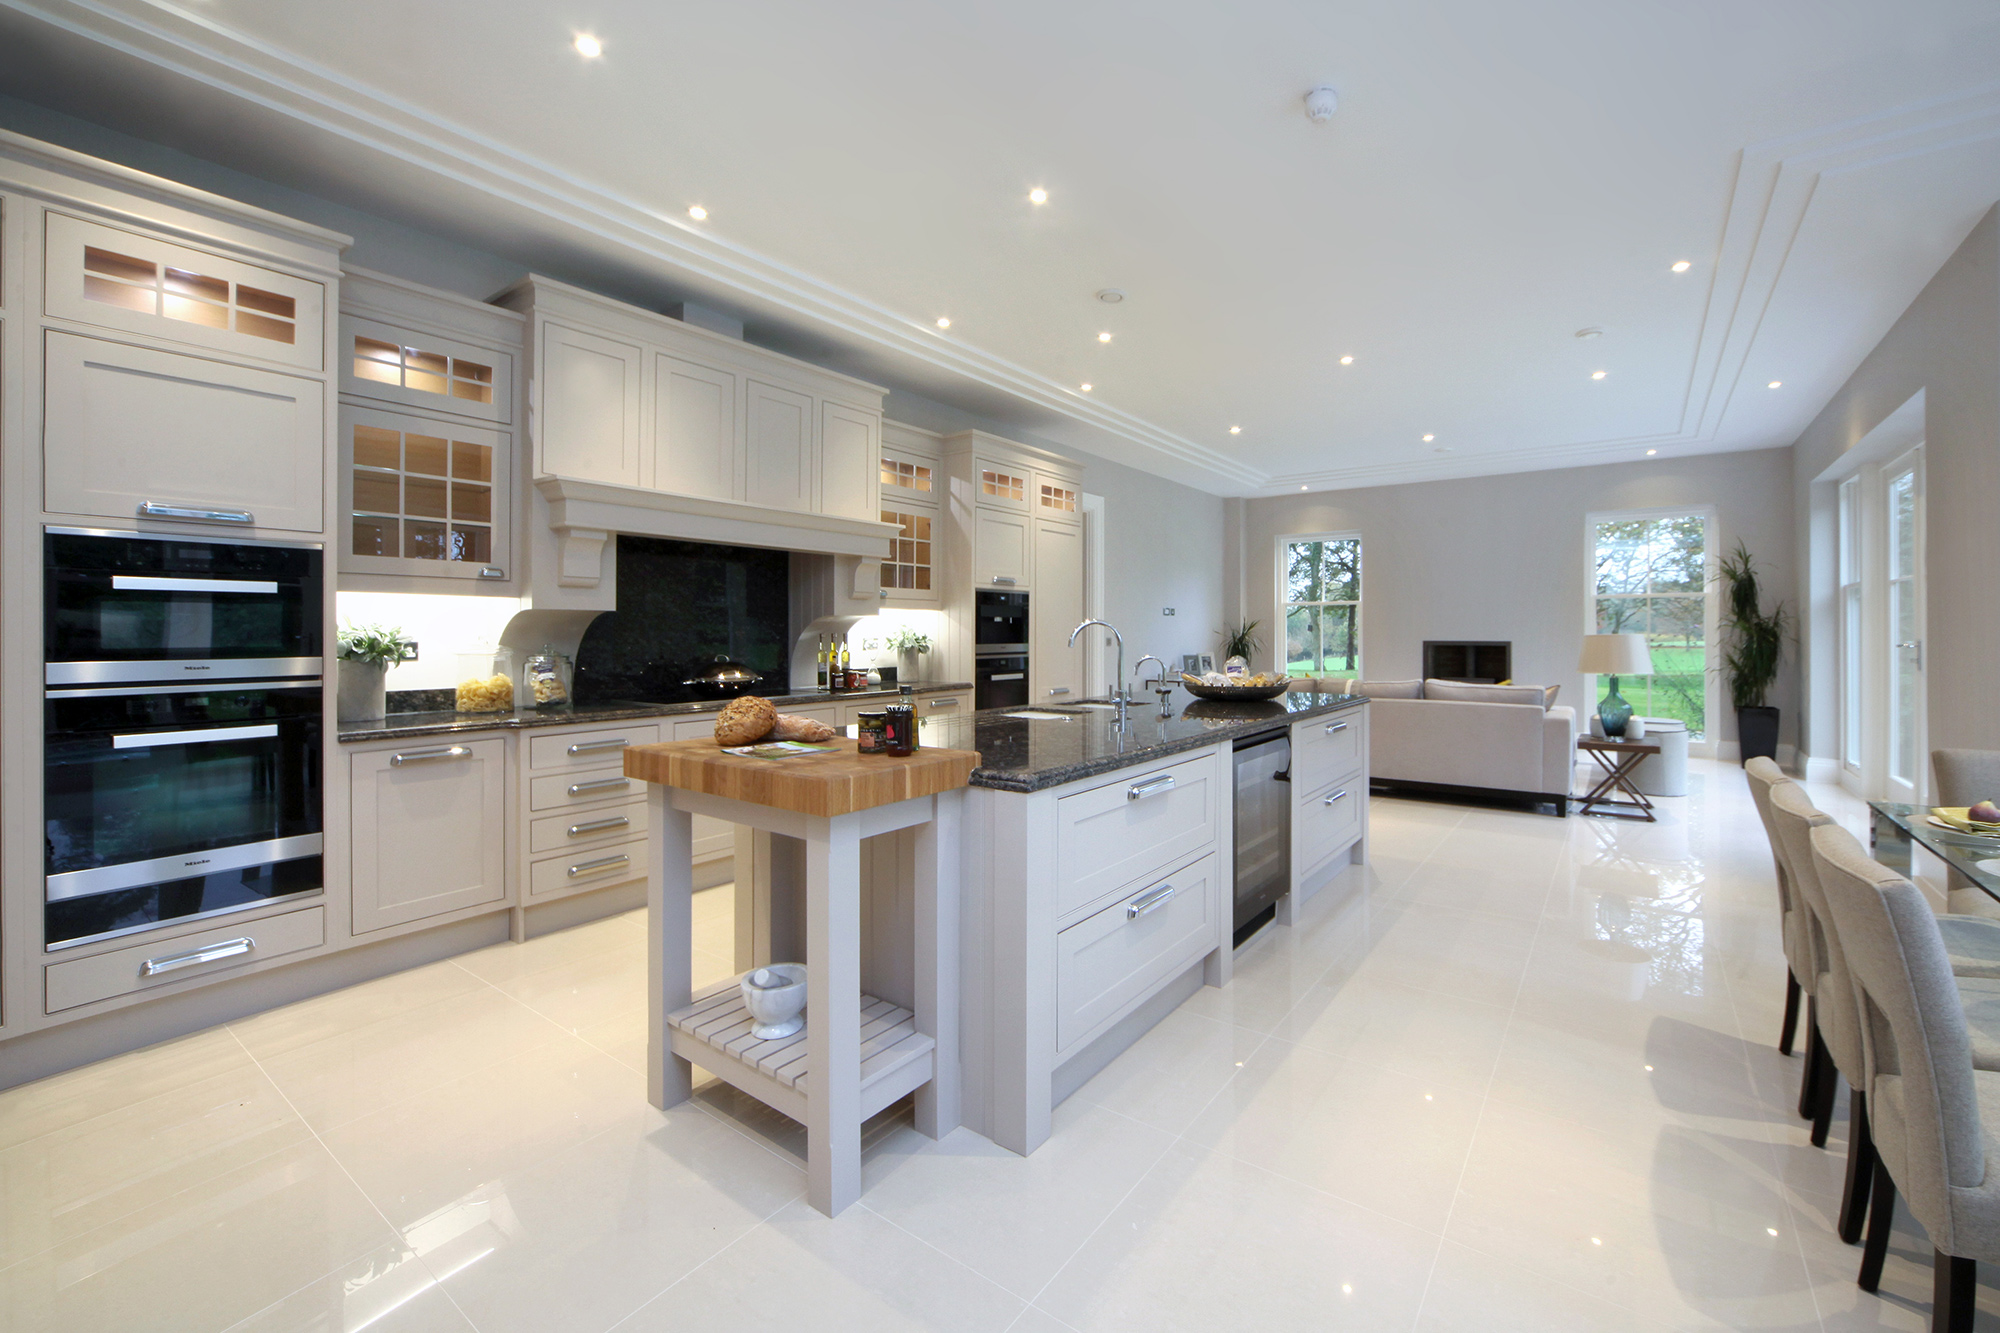 7 Bed Luxury House Picketts Hill Octagon Properties Gu35 8td